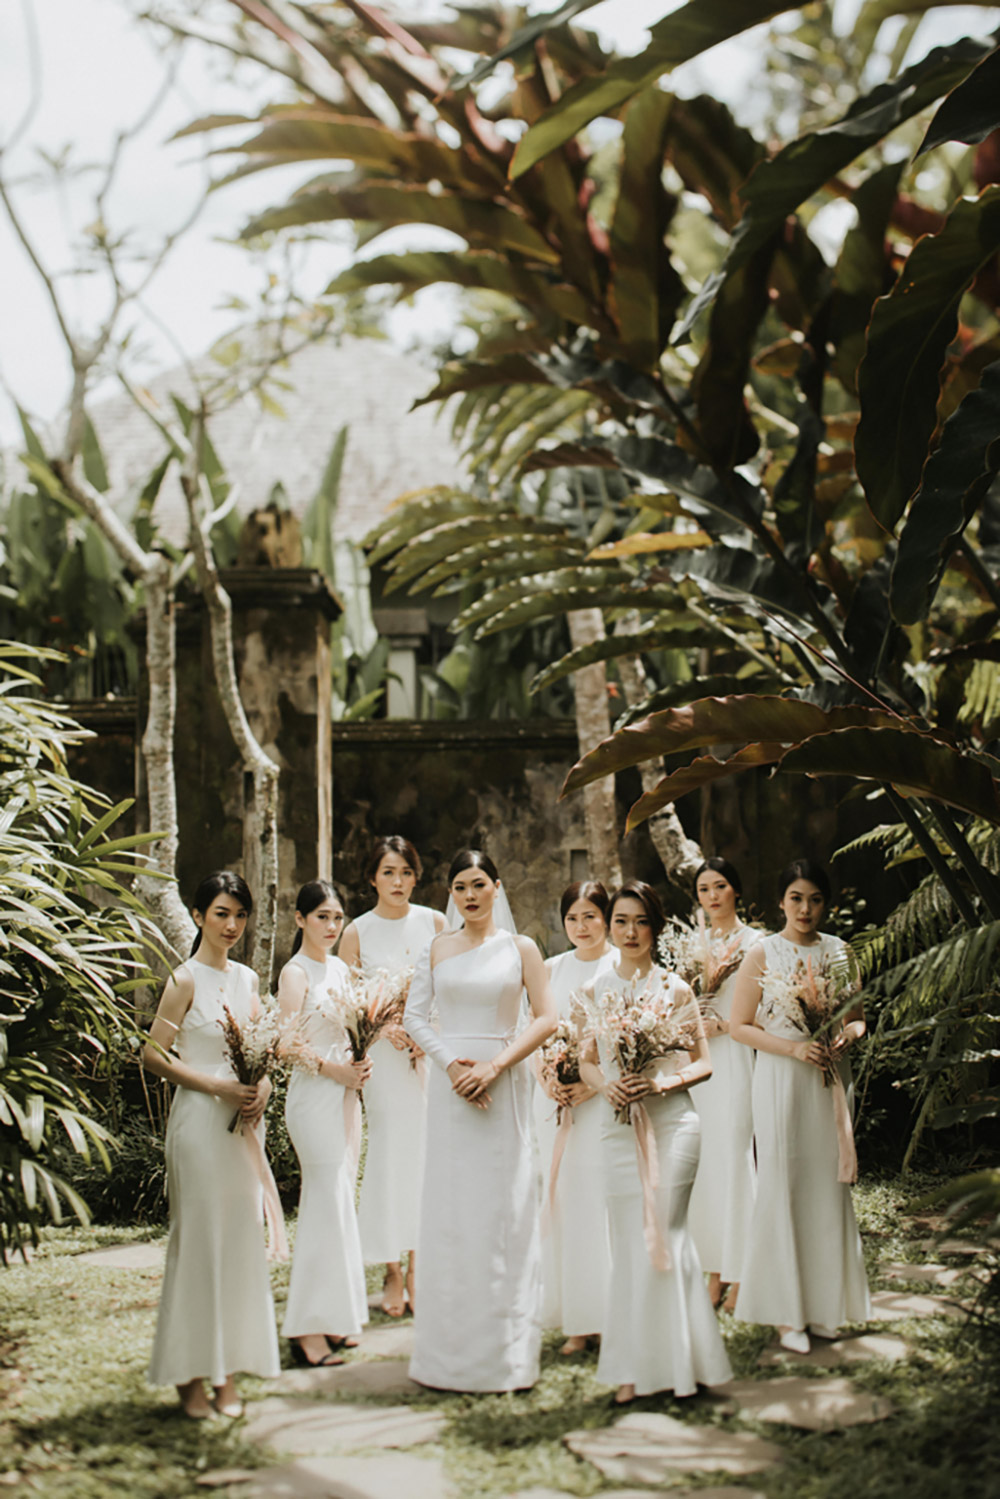 Bridesmaids in all white. Photo by Iluminen. www.theweddingnotebook.com